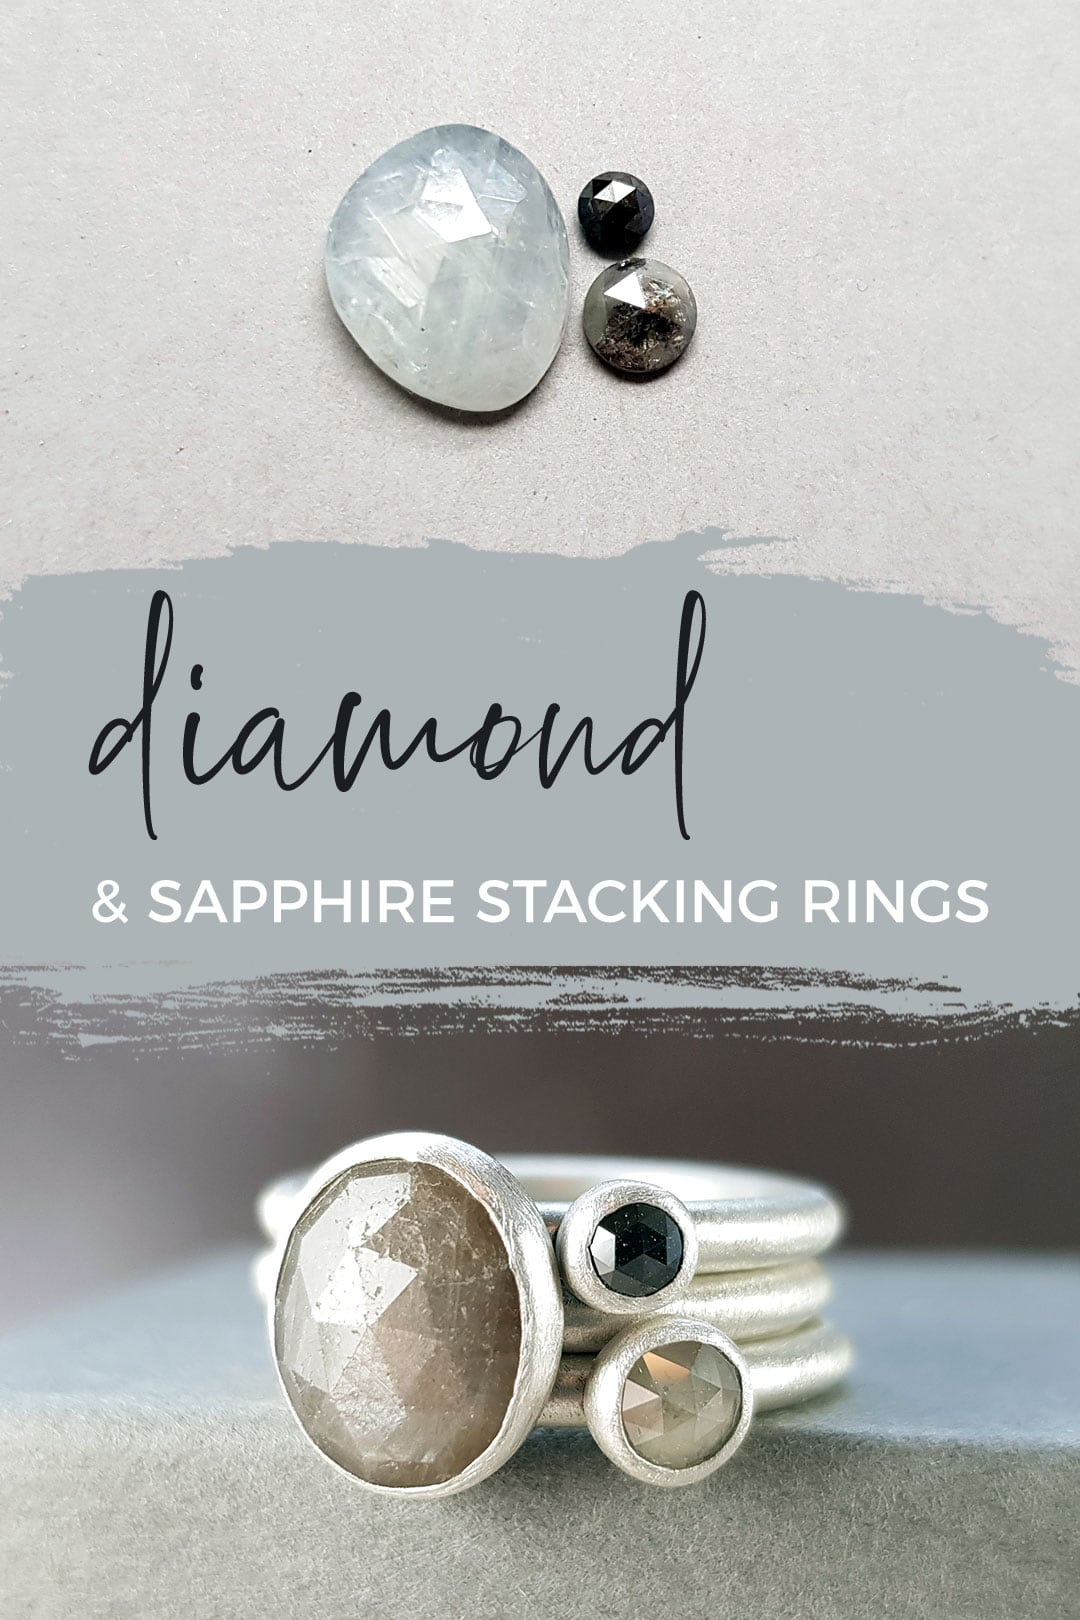 Diamonds and sapphires available for stacking ring orders